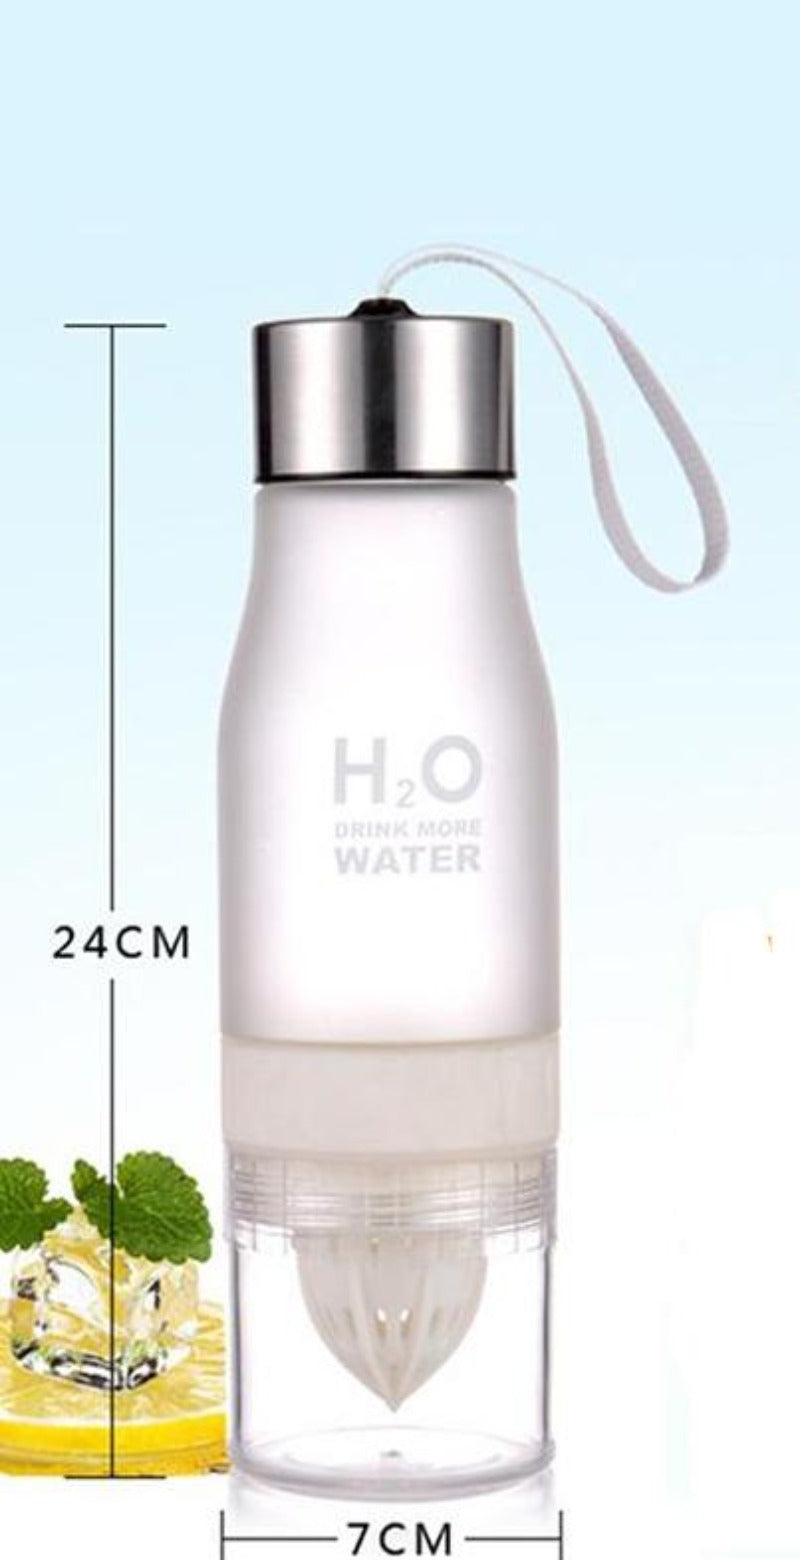 650ml Portable Lemon Juice Infuser Water Bottle Great For Many Outdoor Activities - Fit Sports